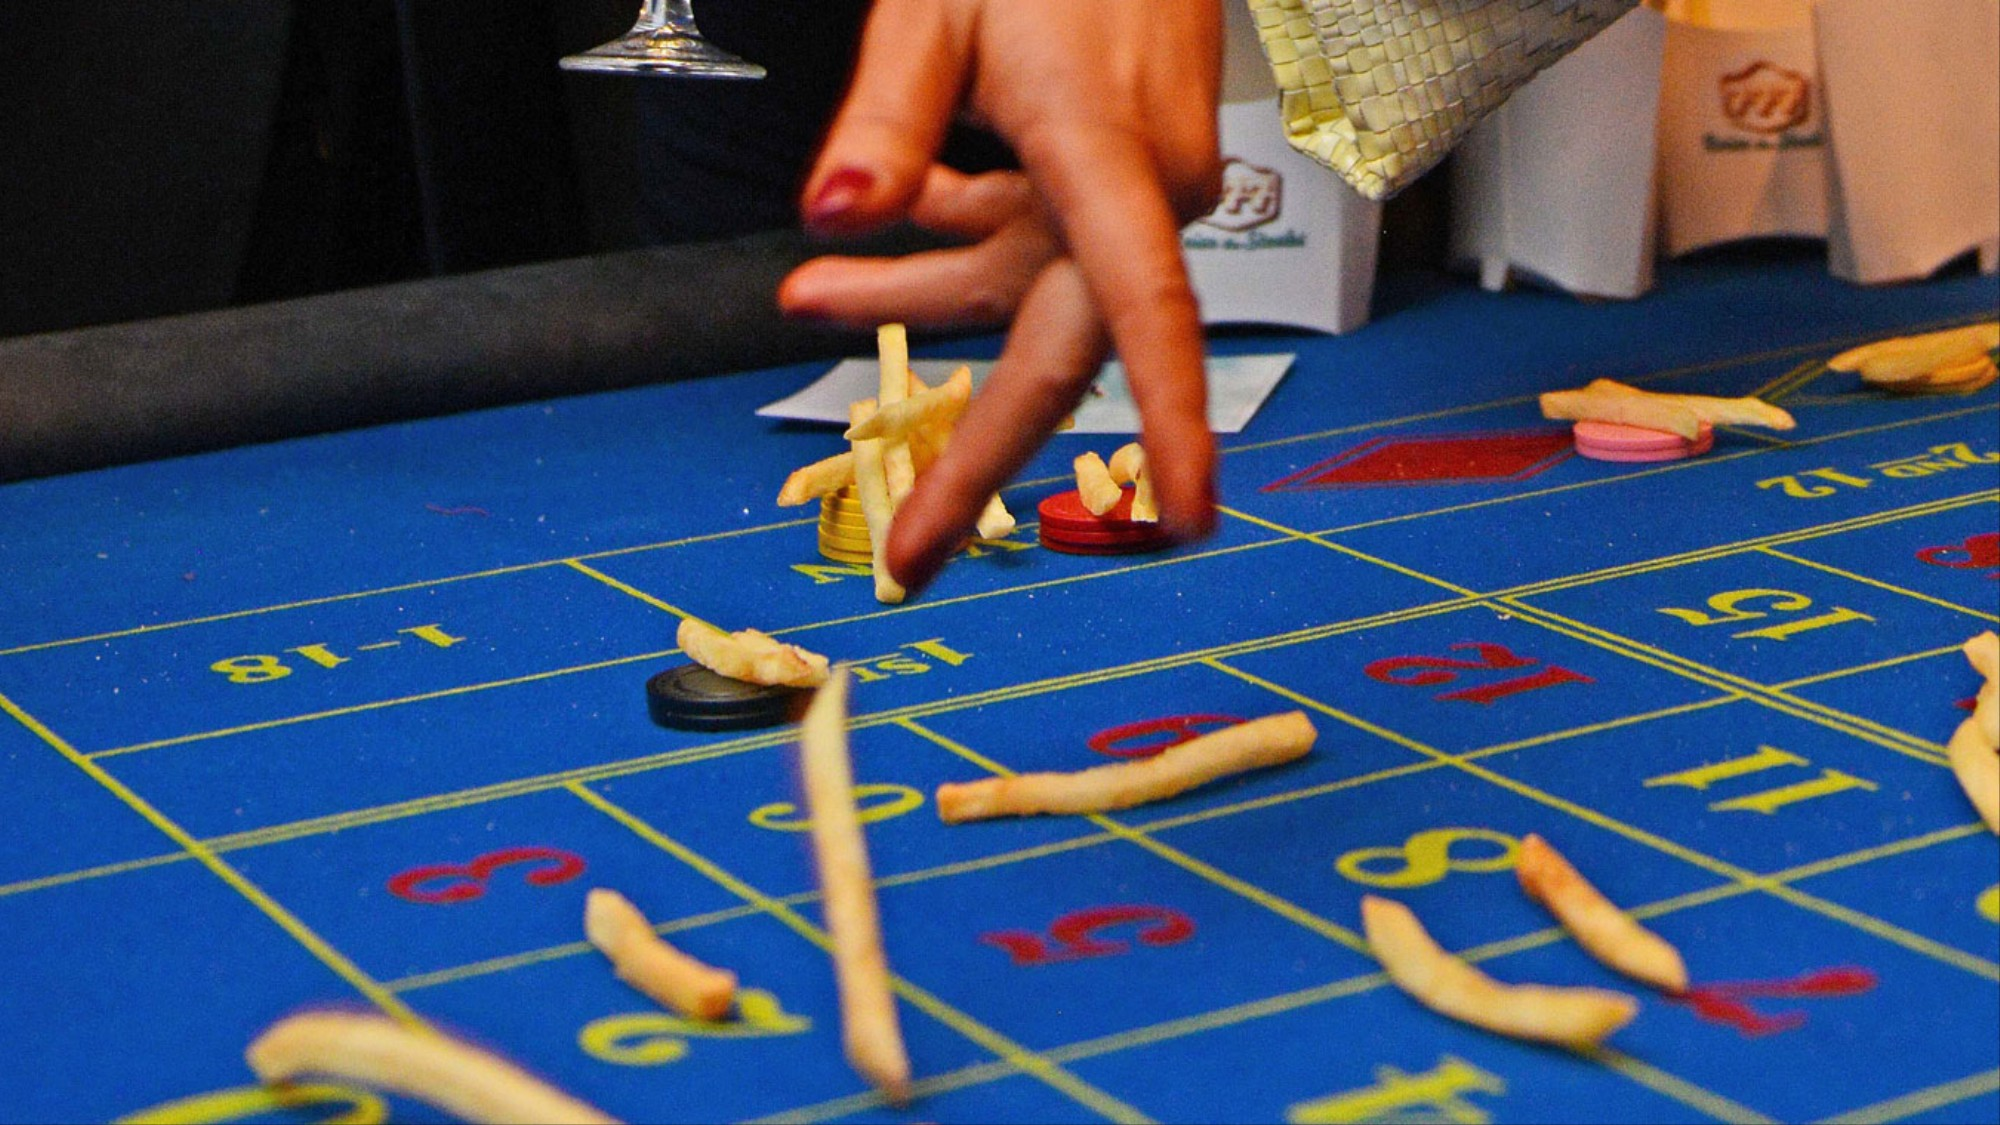 I Gambled with French Fries at a 'Food Casino' and Won More